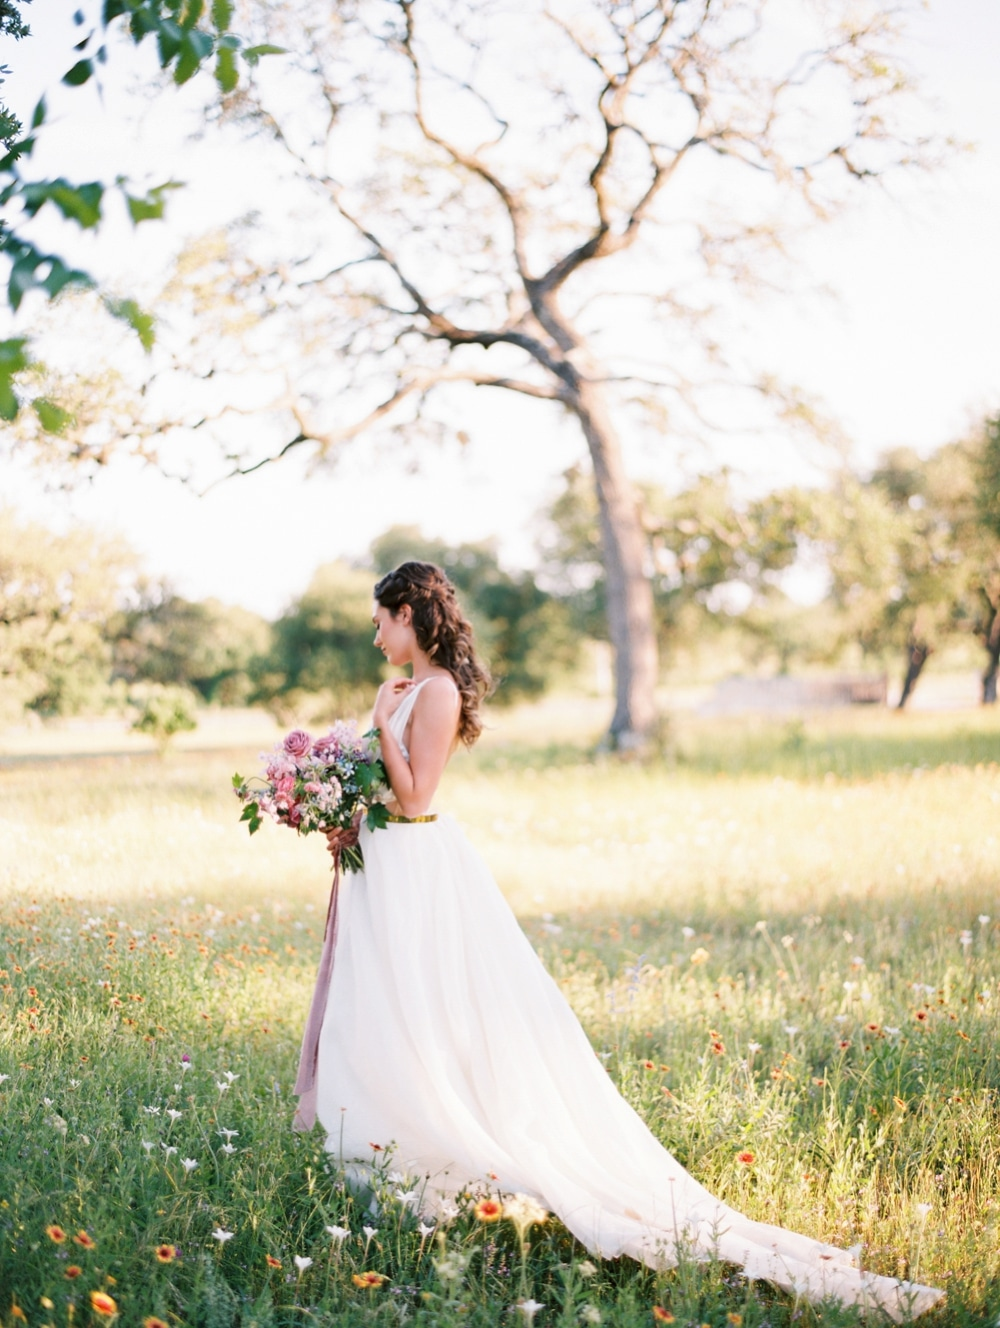 kristin-la-voie-photography-Austin-Wedding-Photographer-20